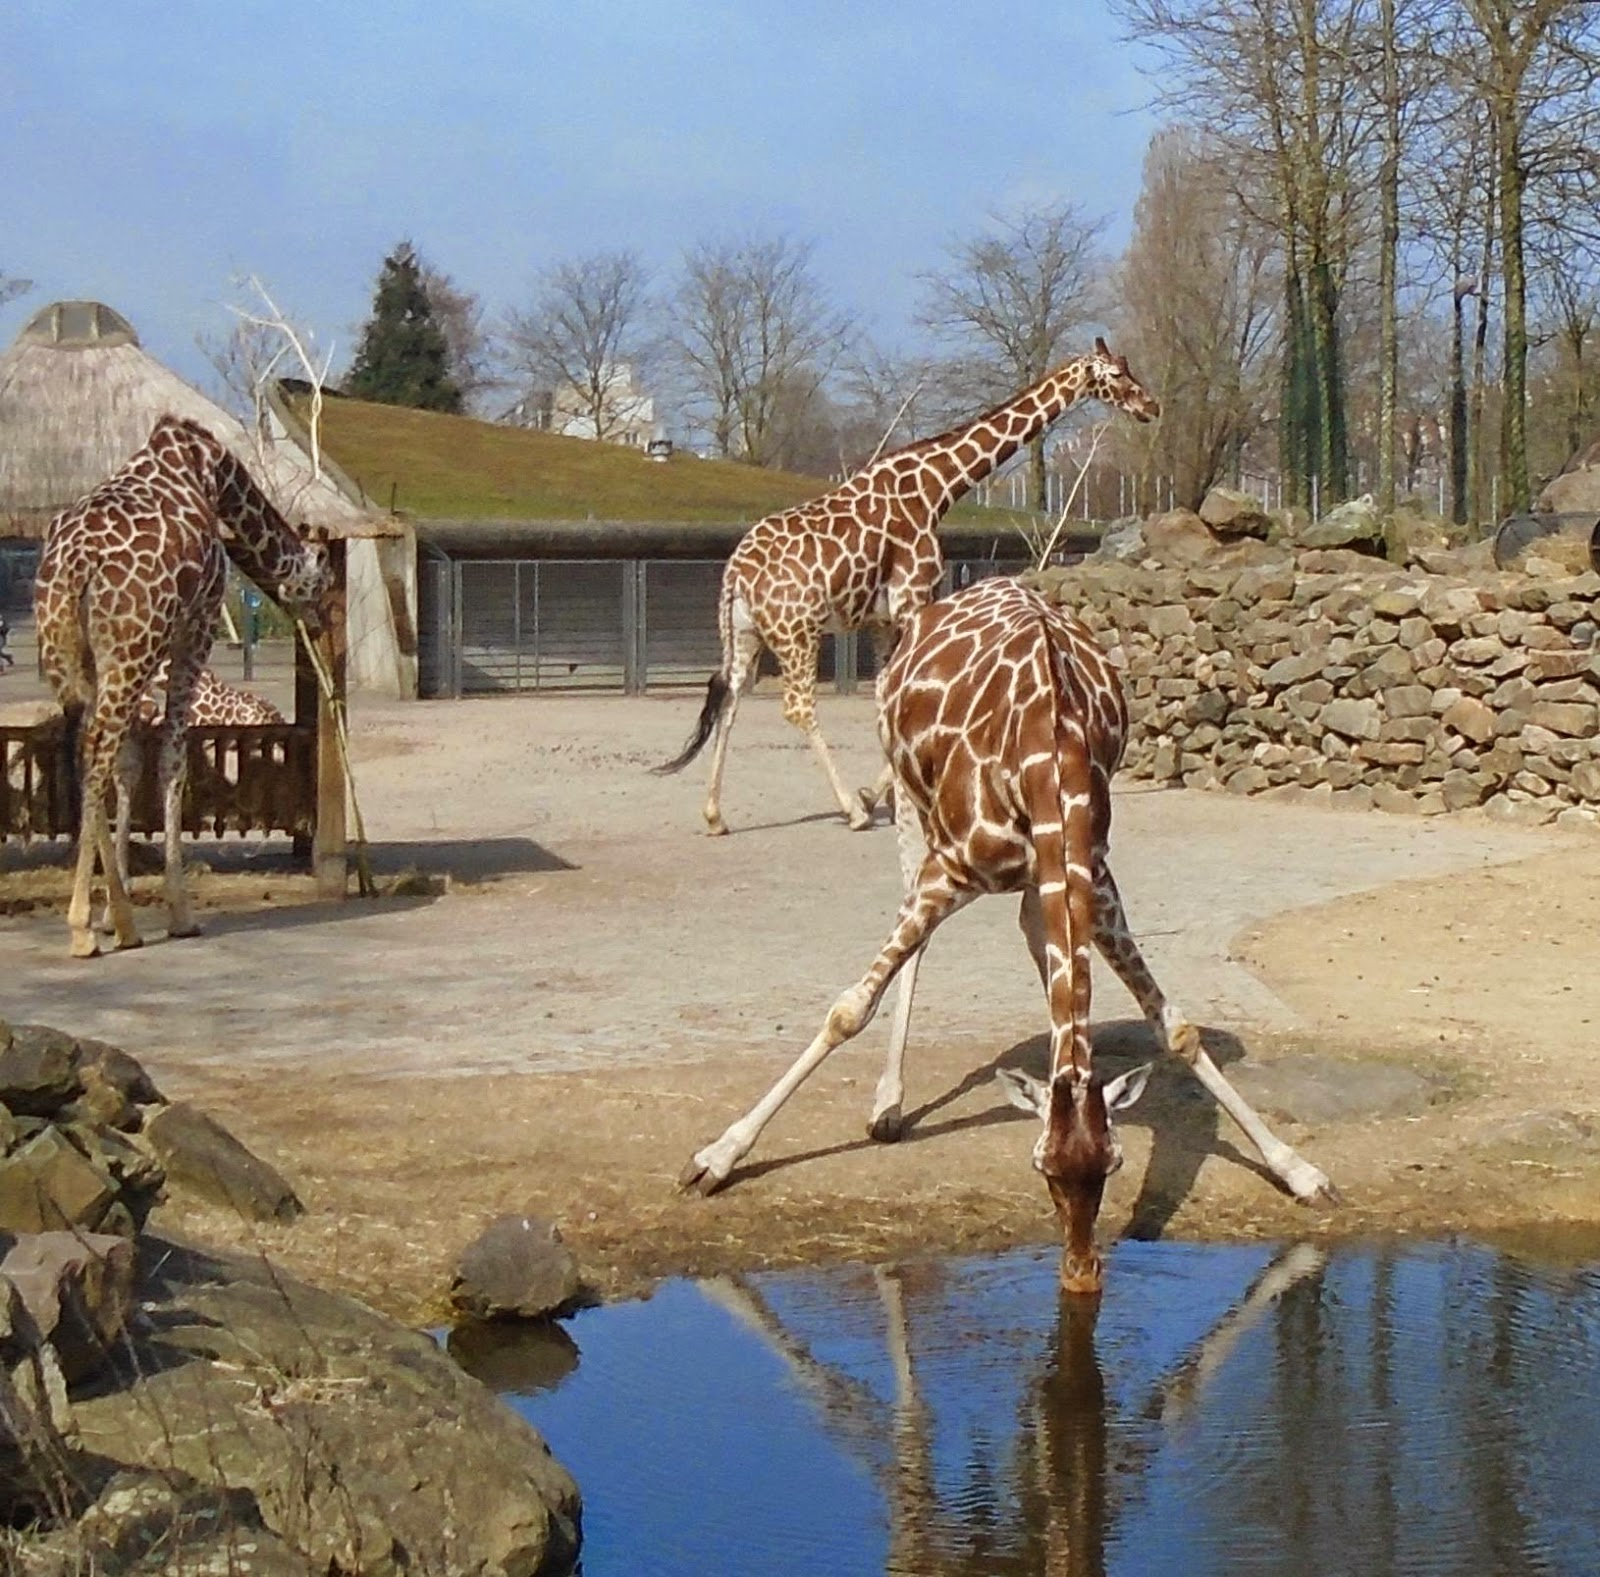 Giraffes at Amsterdam Zoo